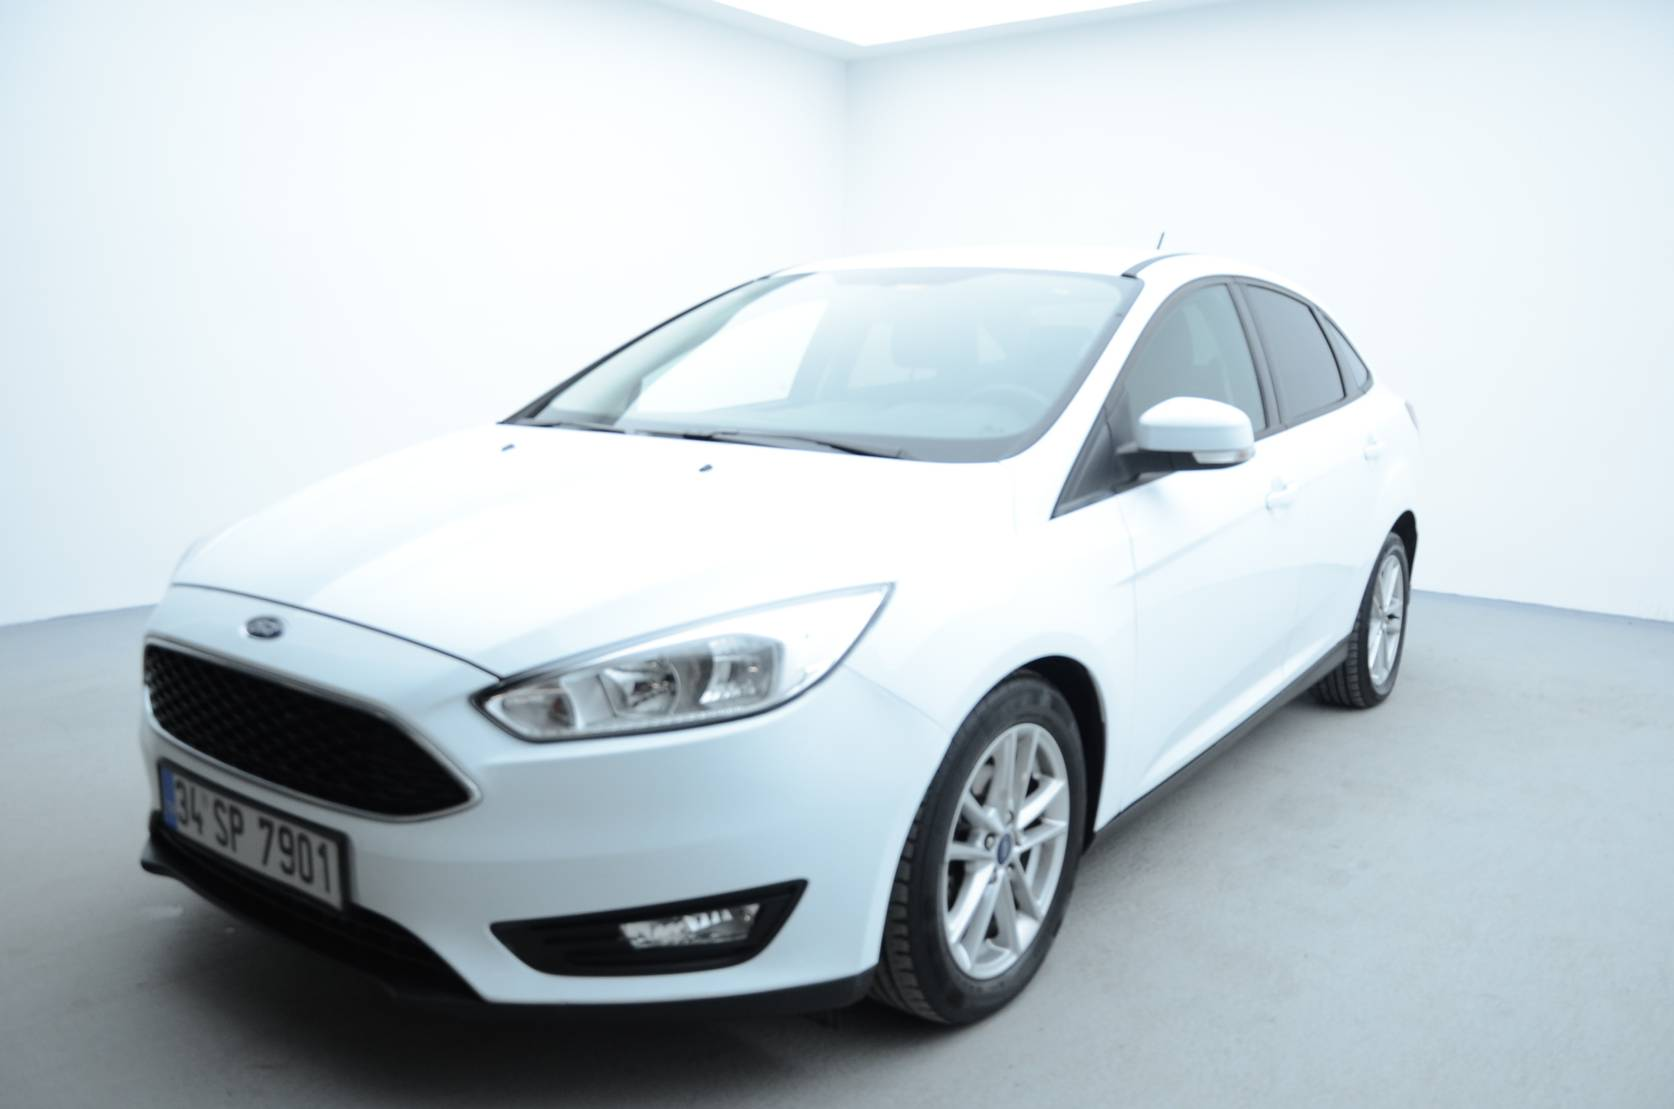 Ford Focus 1.5 TDCi DPF Start-Stopp-System Aut., Trend X detail1